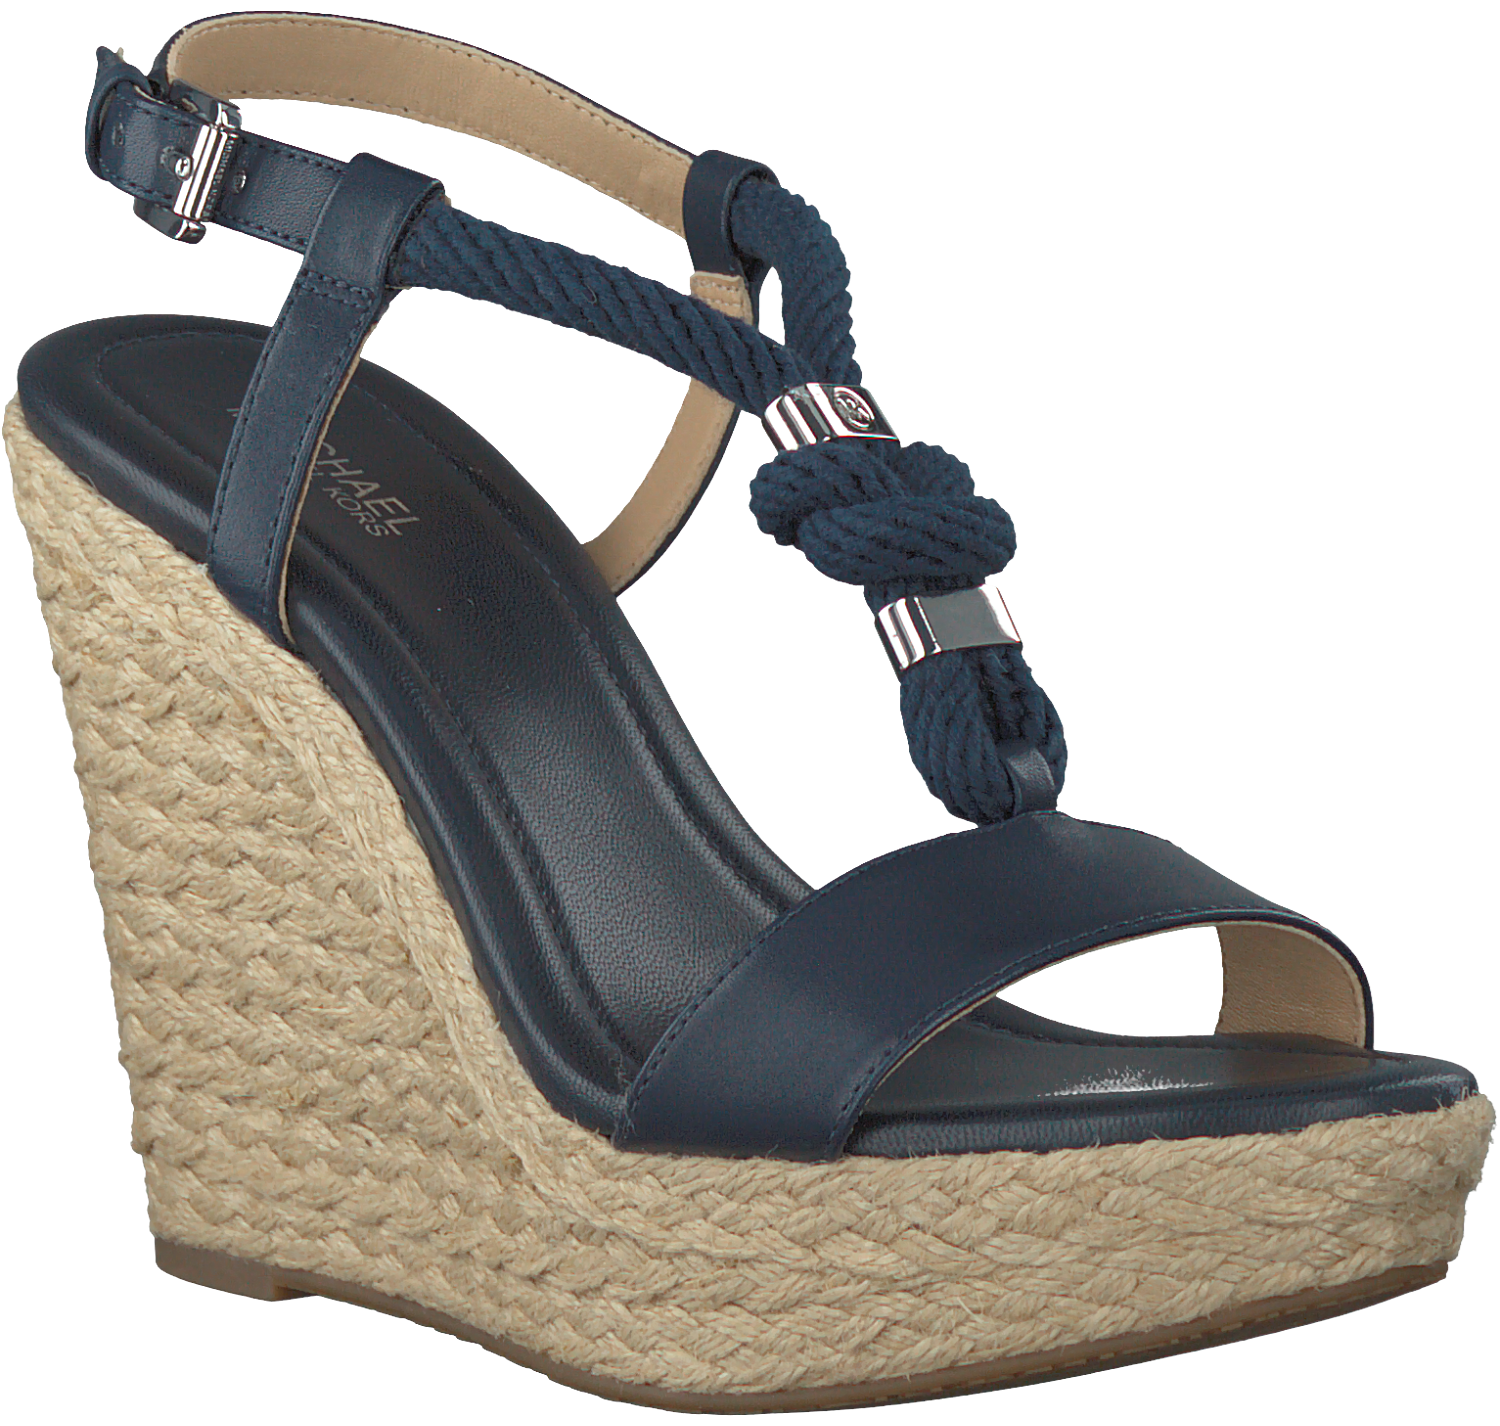 blaue michael kors sandalen holly wedge schuhmode online. Black Bedroom Furniture Sets. Home Design Ideas